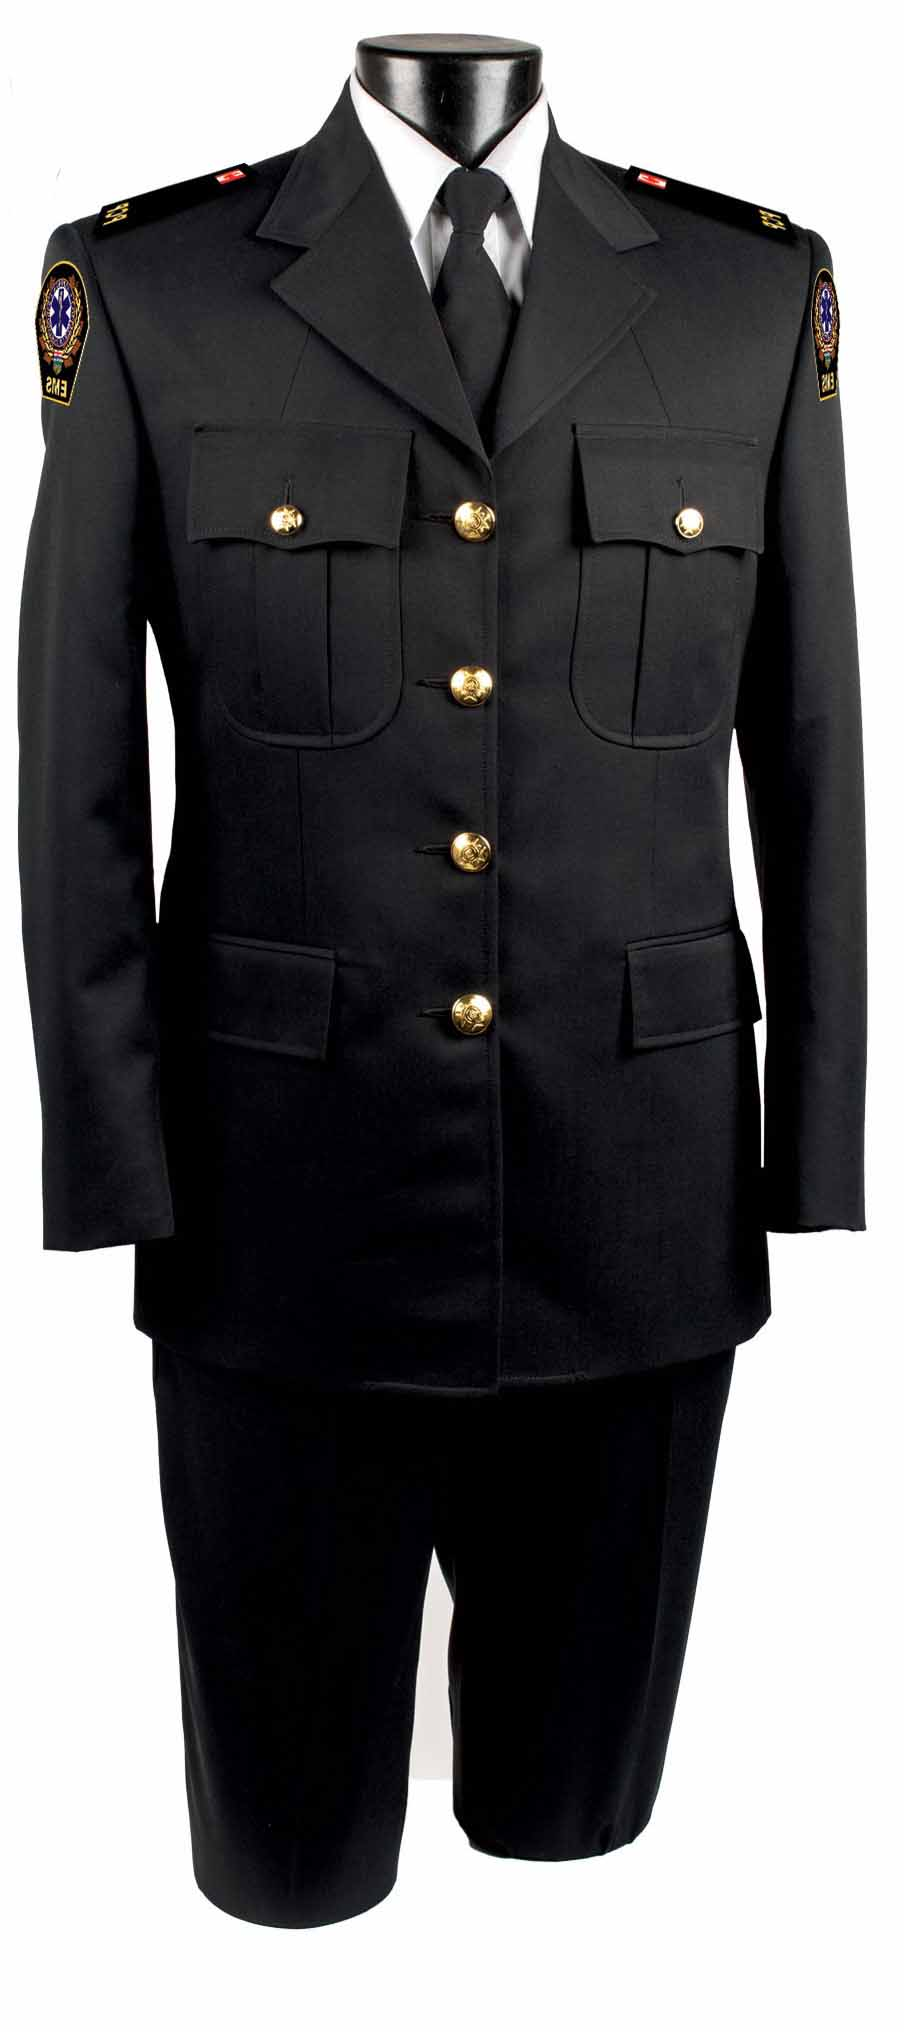 Female Four Button Single Breasted Tunic Jacket-Derks Uniforms